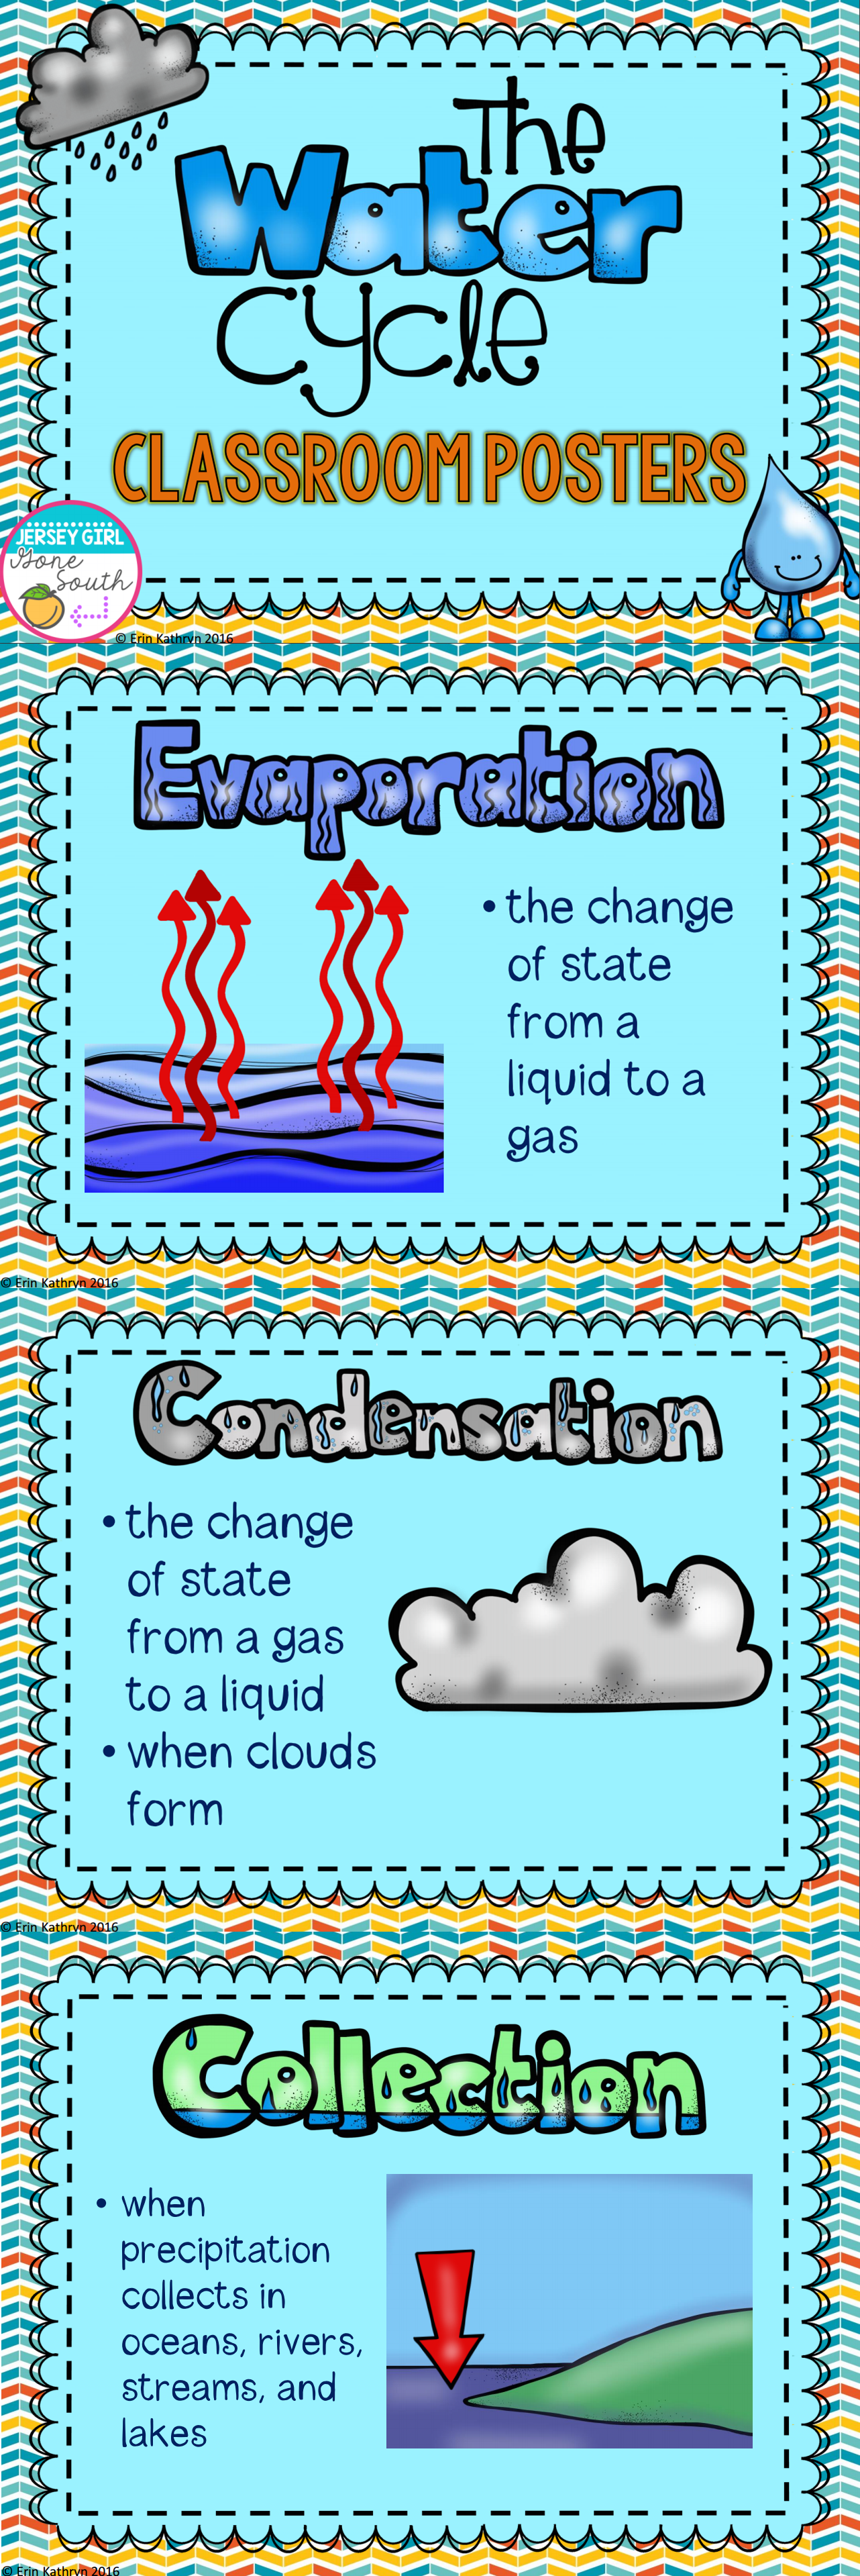 Respect Worksheets For Kids Pdf Free Science Worksheet Water Cycle  Heres Some Activities From A  Nelson Handwriting Worksheets Printable Excel with Distance Rate Time Worksheet Word These Water Cycle Posters Outline The Most Important Parts Of The Water  Cycle Including The Odd One Out Worksheet Word